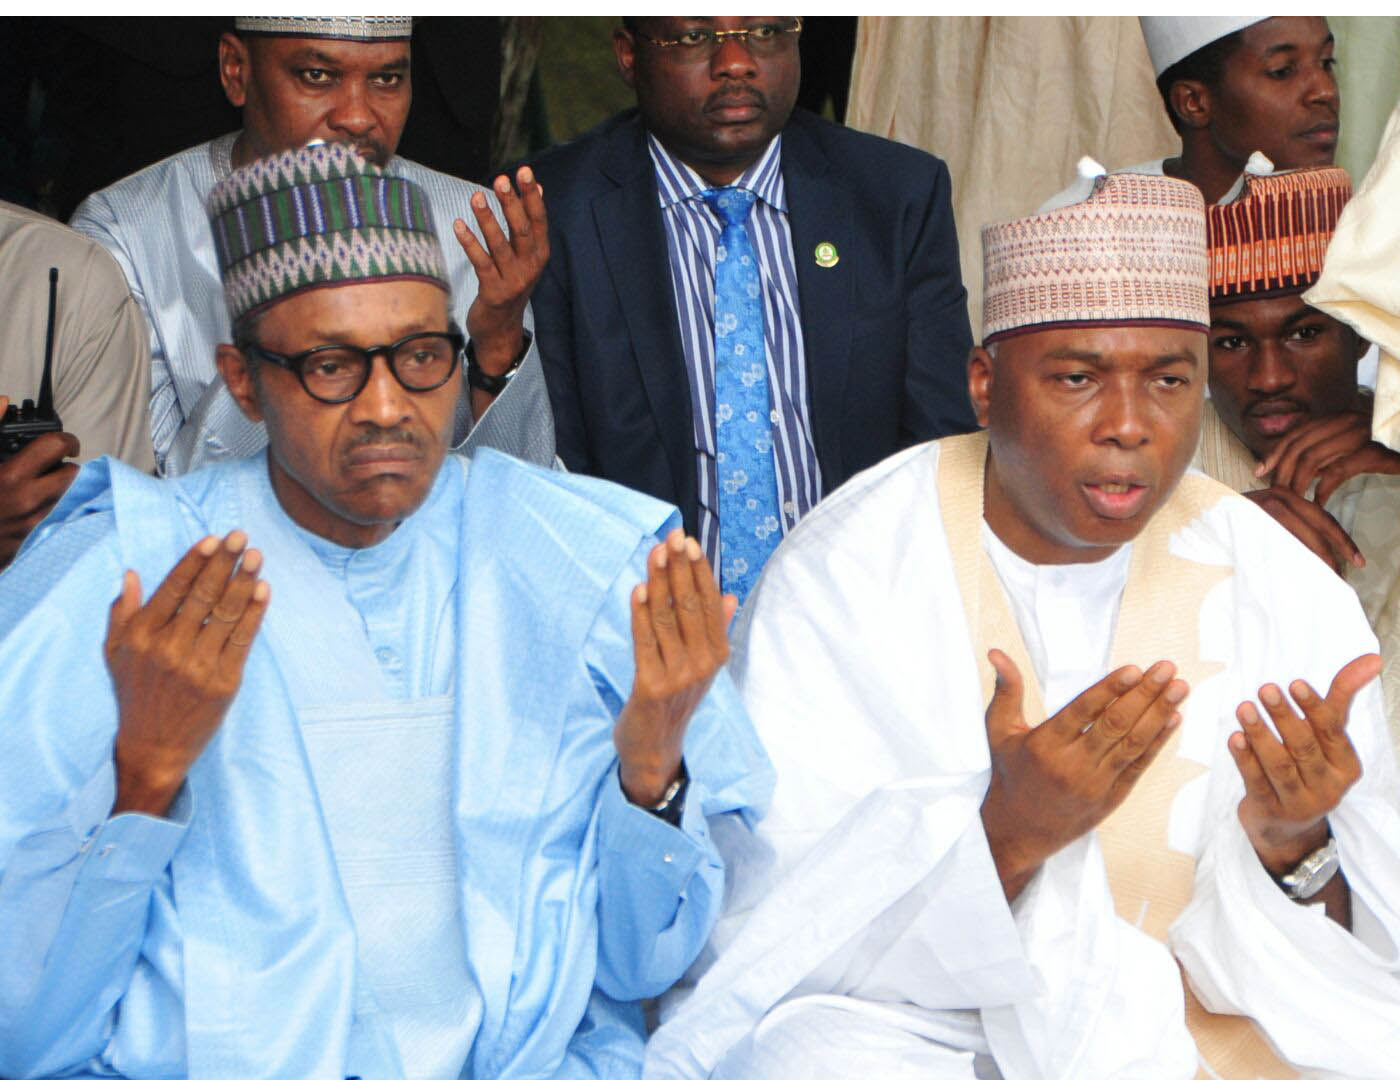 L-R, President  Muhammadu Buhari and the Senate President, Dr. Abubakar Bukola Saraki, during the   Eid-el Fitri celebration  at the National Prayer Ground  along Airport  Road, Abuja yesterday.